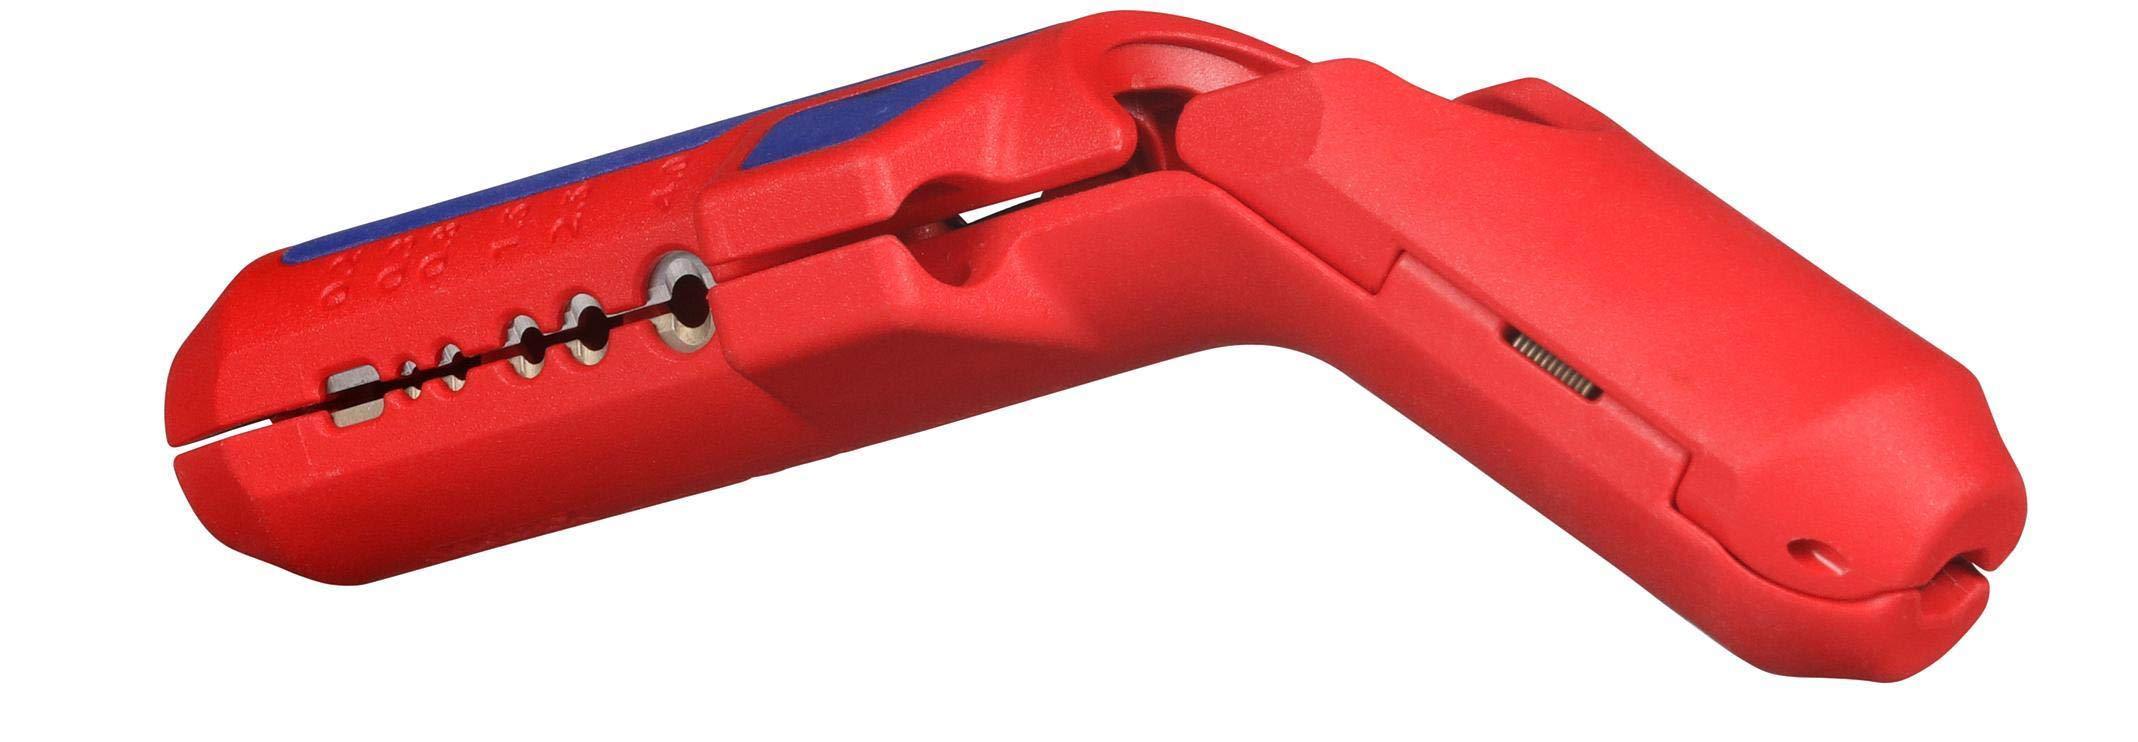 Knipex Tools 16 95 01 SB ErgoStrip Universal Dismanting Tool by KNIPEX Tools